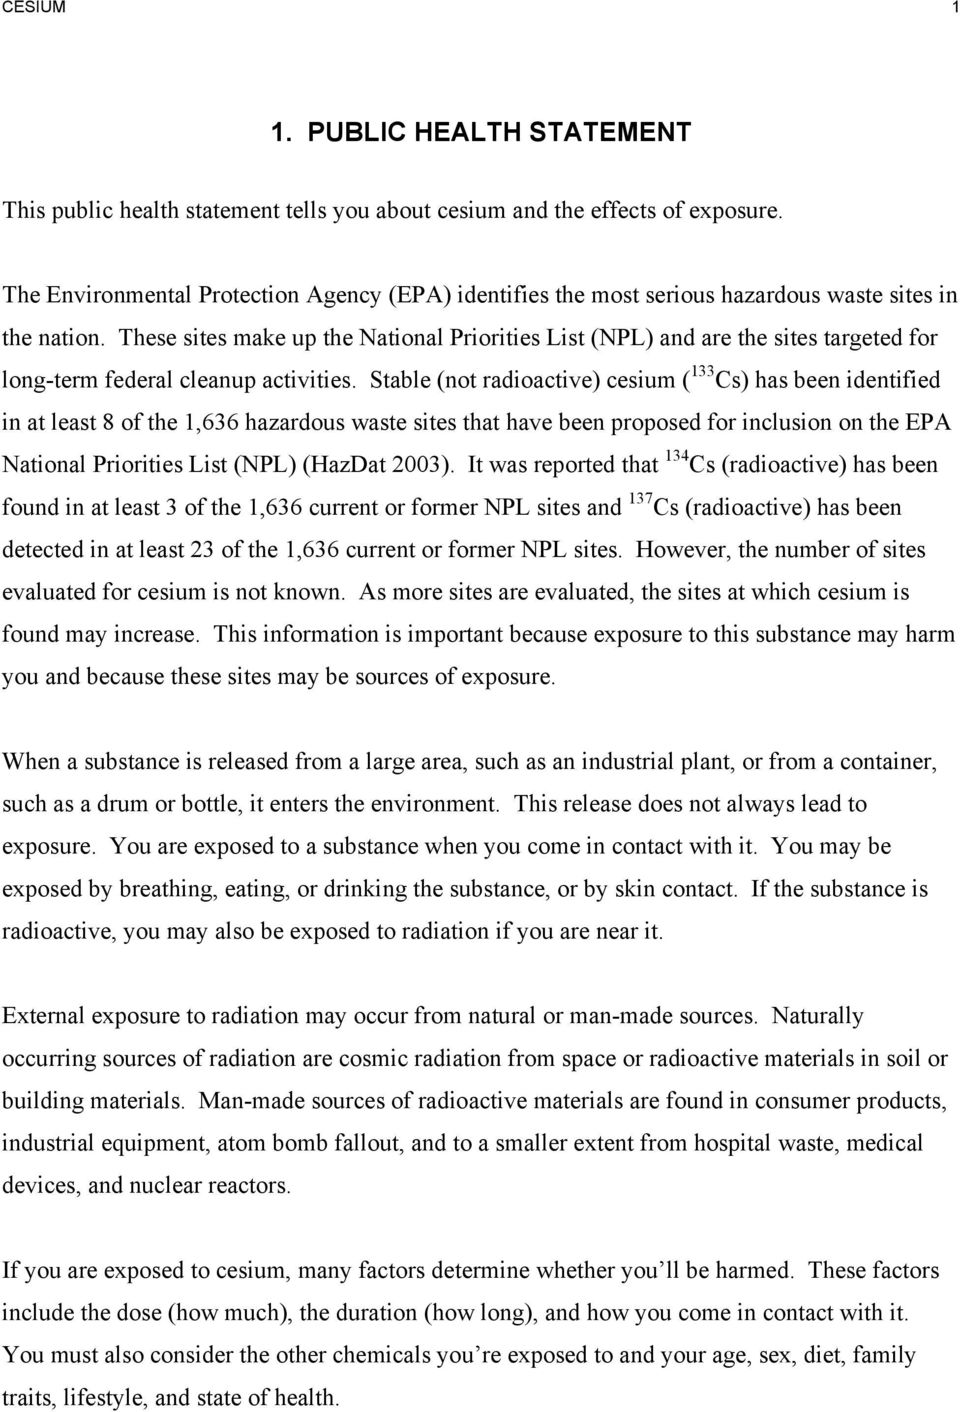 Stable (not radioactive) cesium ( 133 Cs) has been identified in at least 8 of the 1,636 hazardous waste sites that have been proposed for inclusion on the EPA National Priorities List (NPL) (HazDat